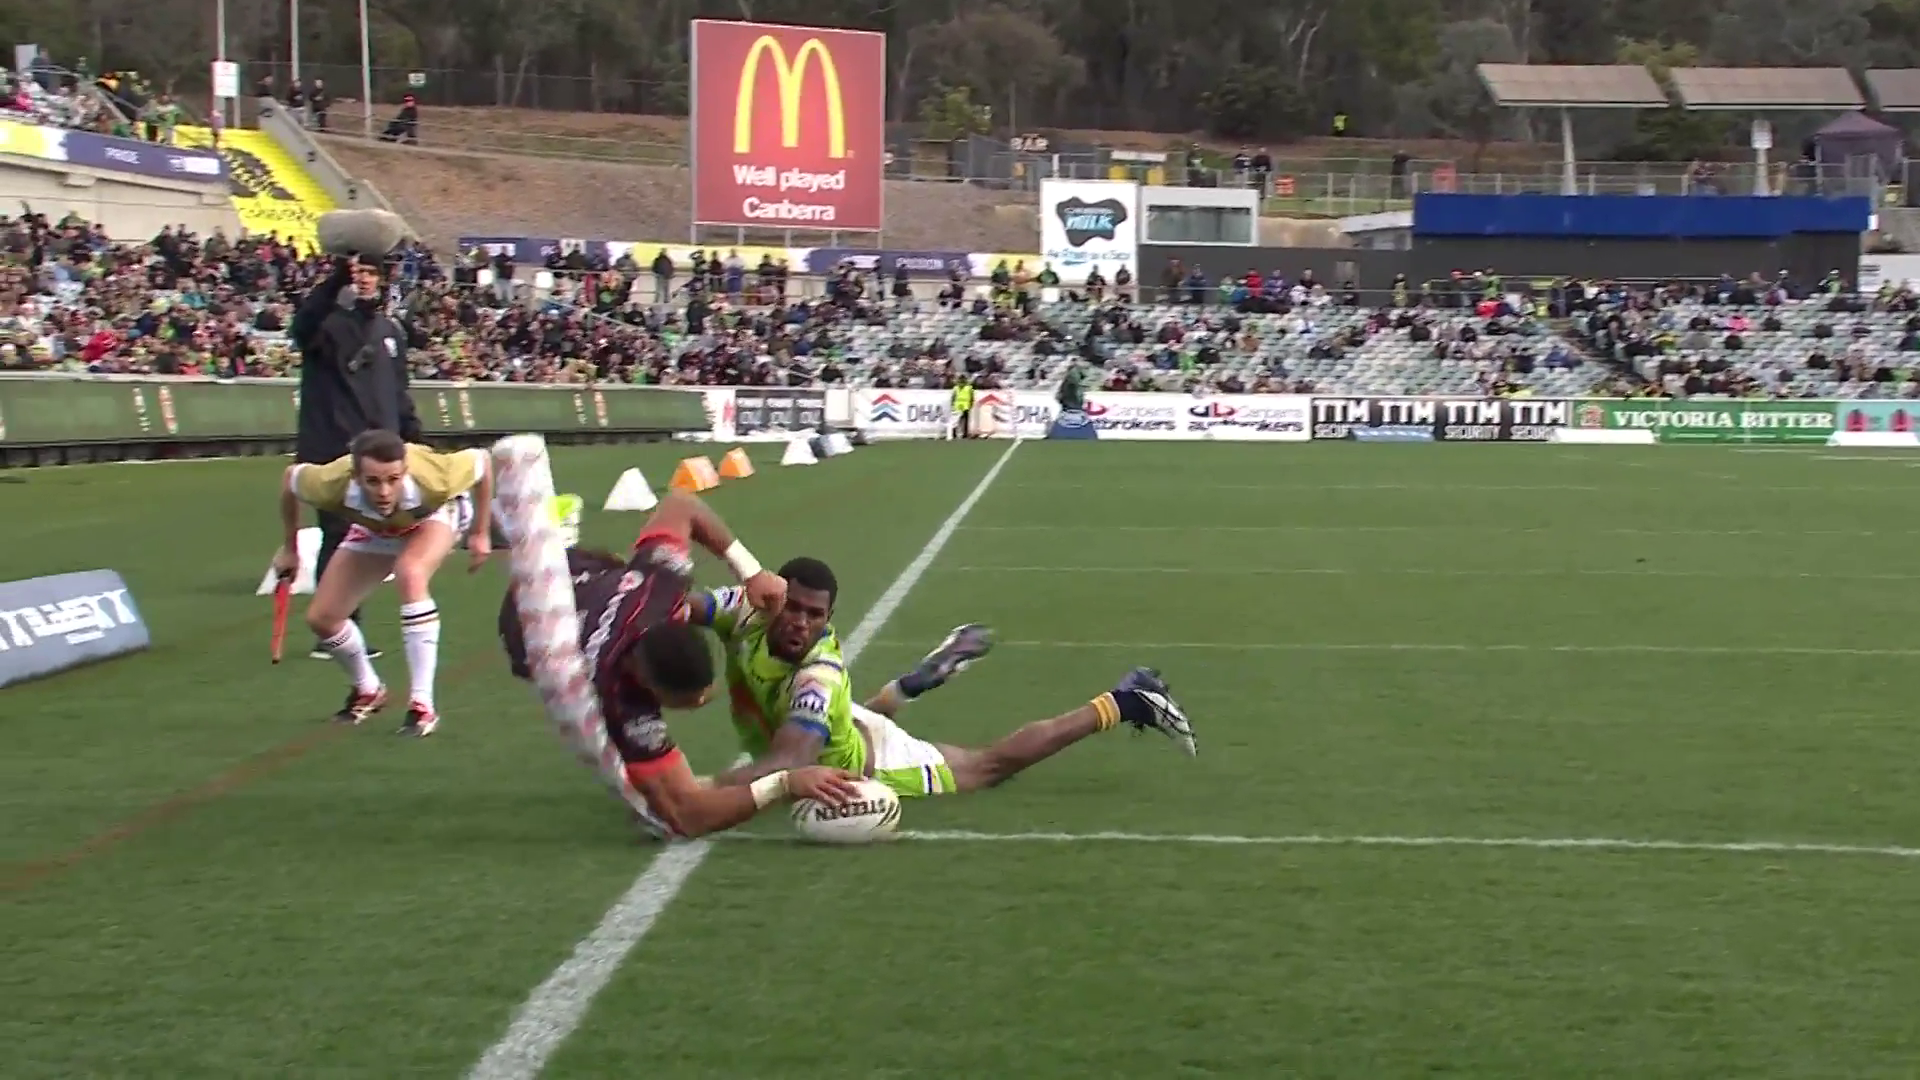 Fusitu'a try sends game to golden point